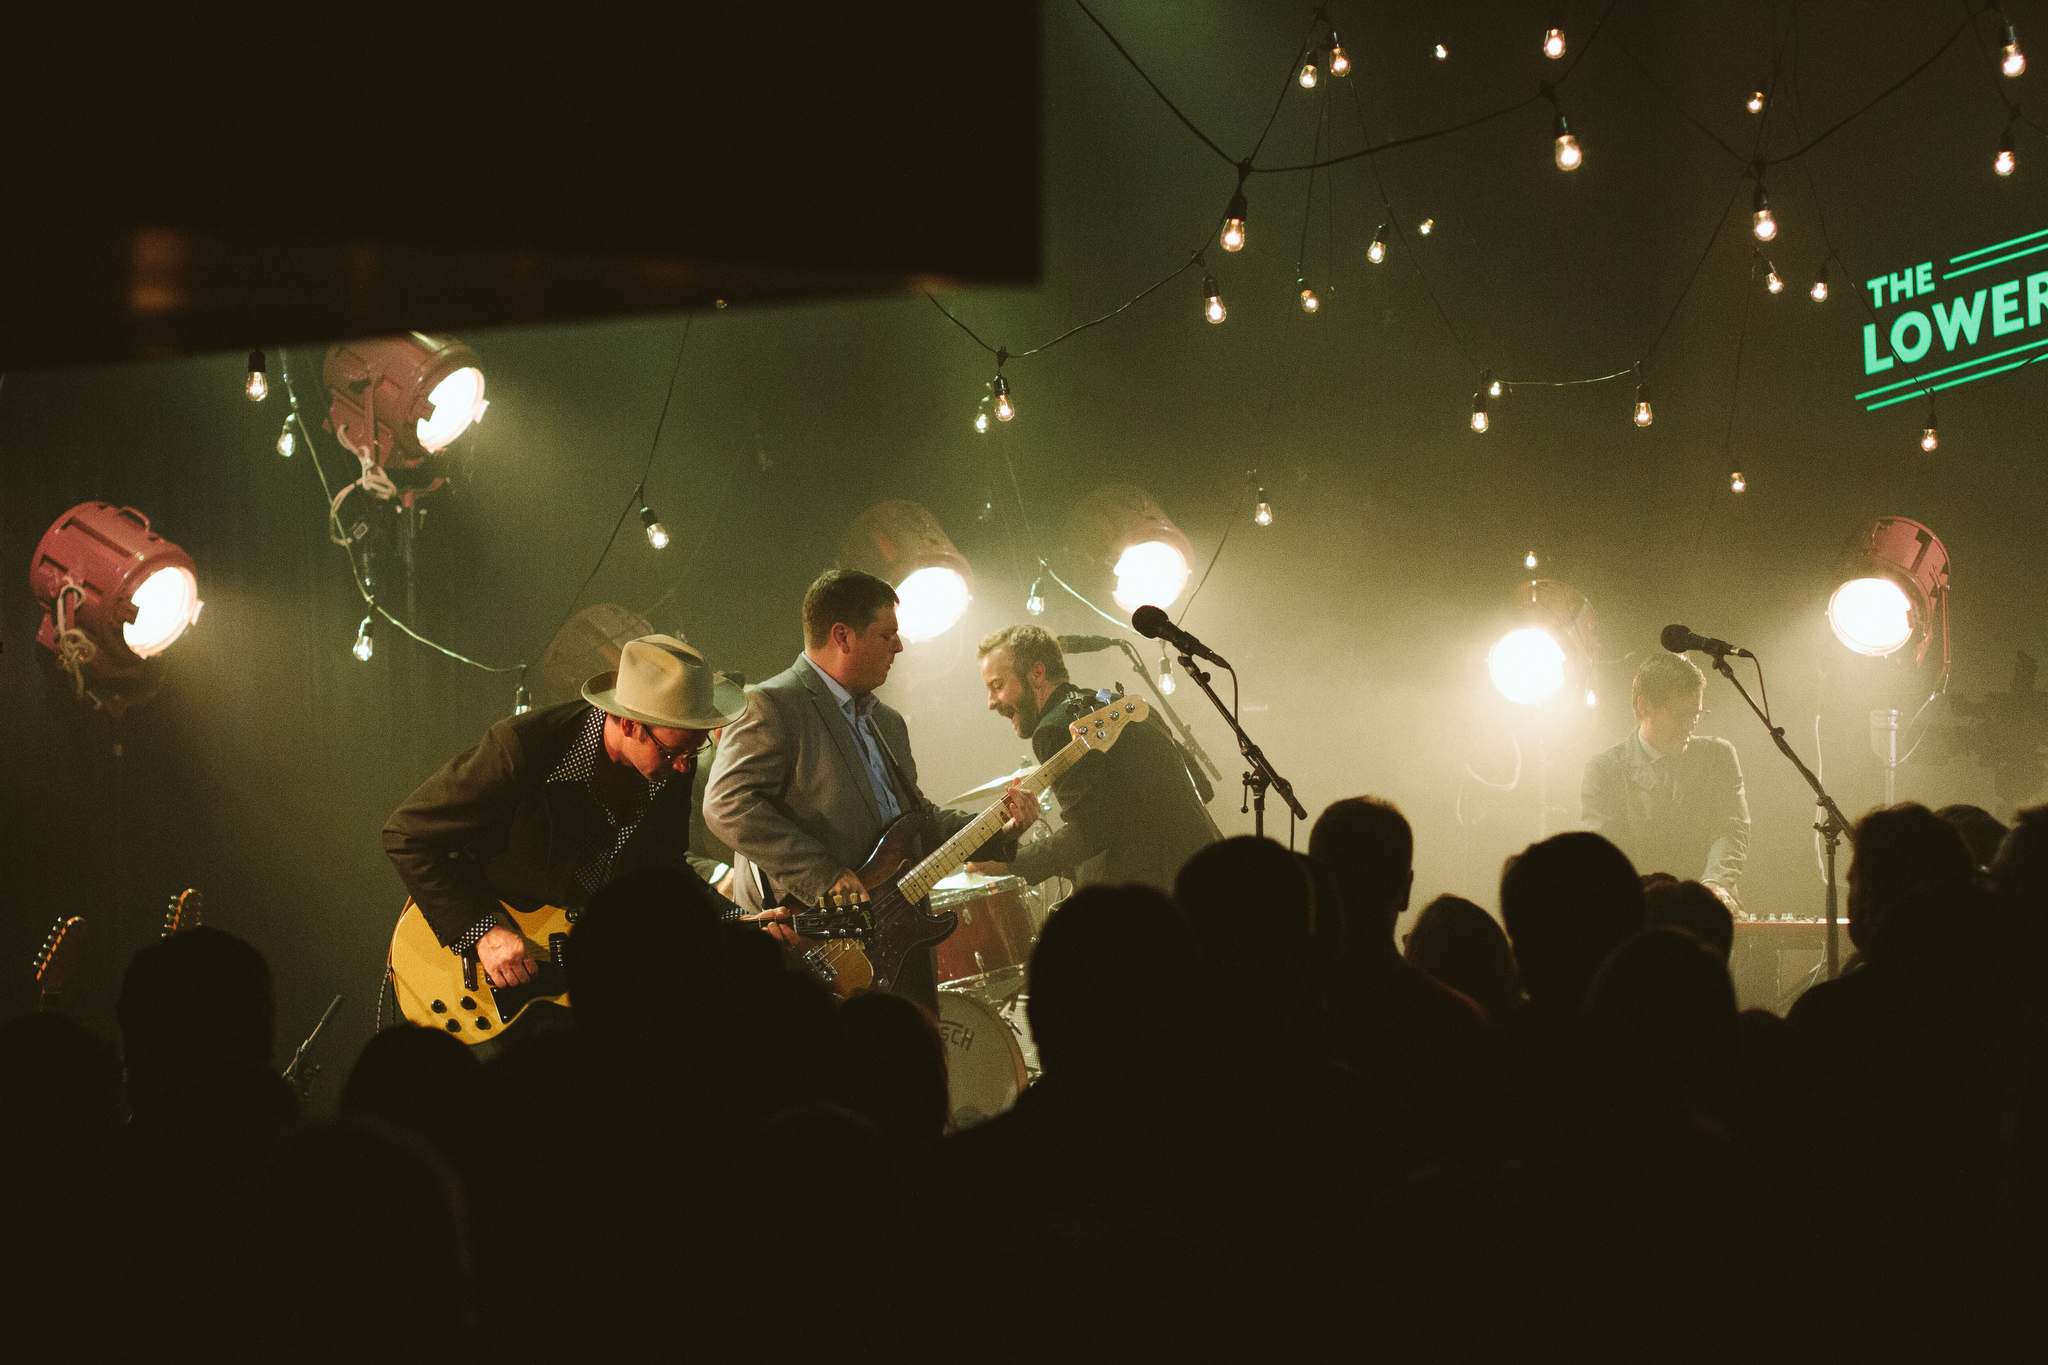 Dead Man Winter with Trampled by Turtles front man Dave Simonett, Erik Koskinen and JT Bates